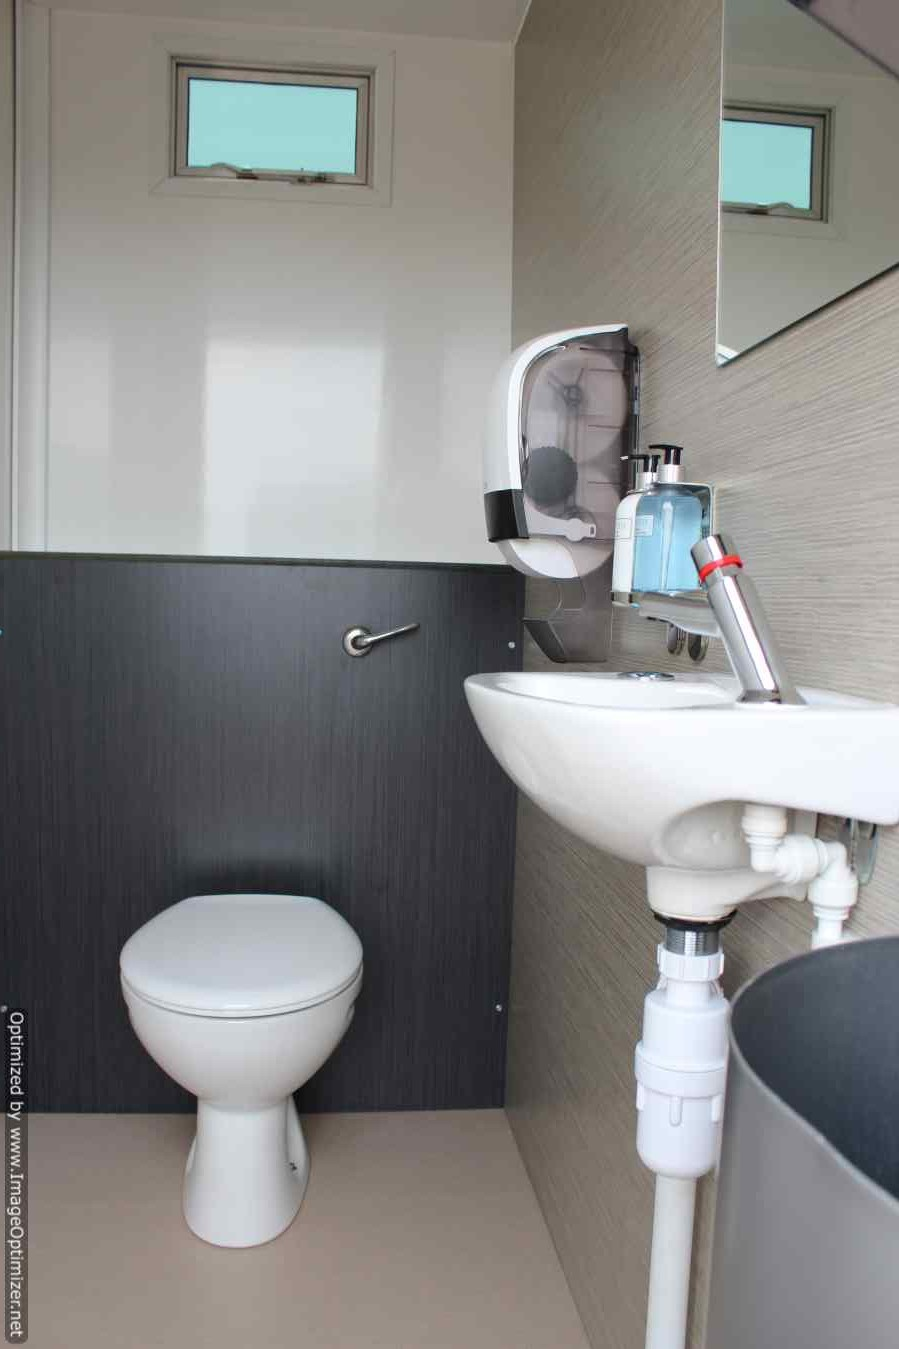 A bathroom with white and black walls.